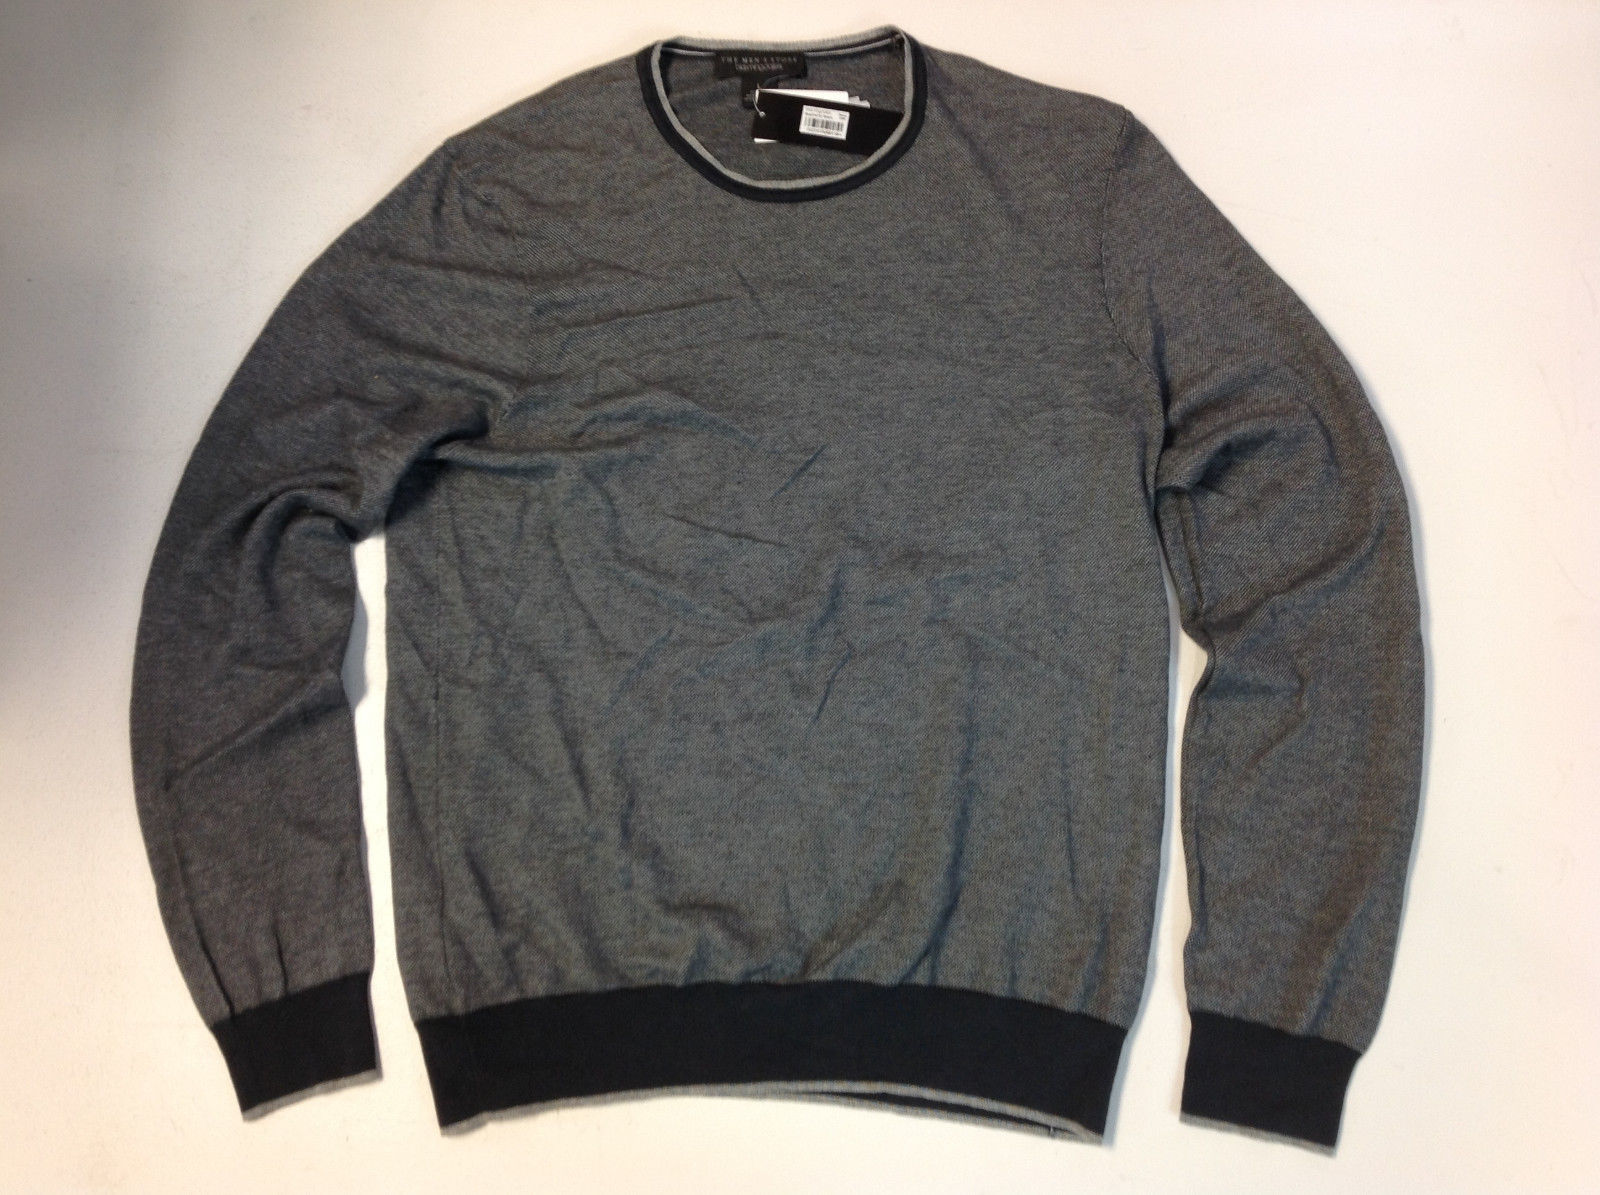 The Men's Store at Bloomingdale's Cotton Birdseye Tonal Trim Sweater, S , $118